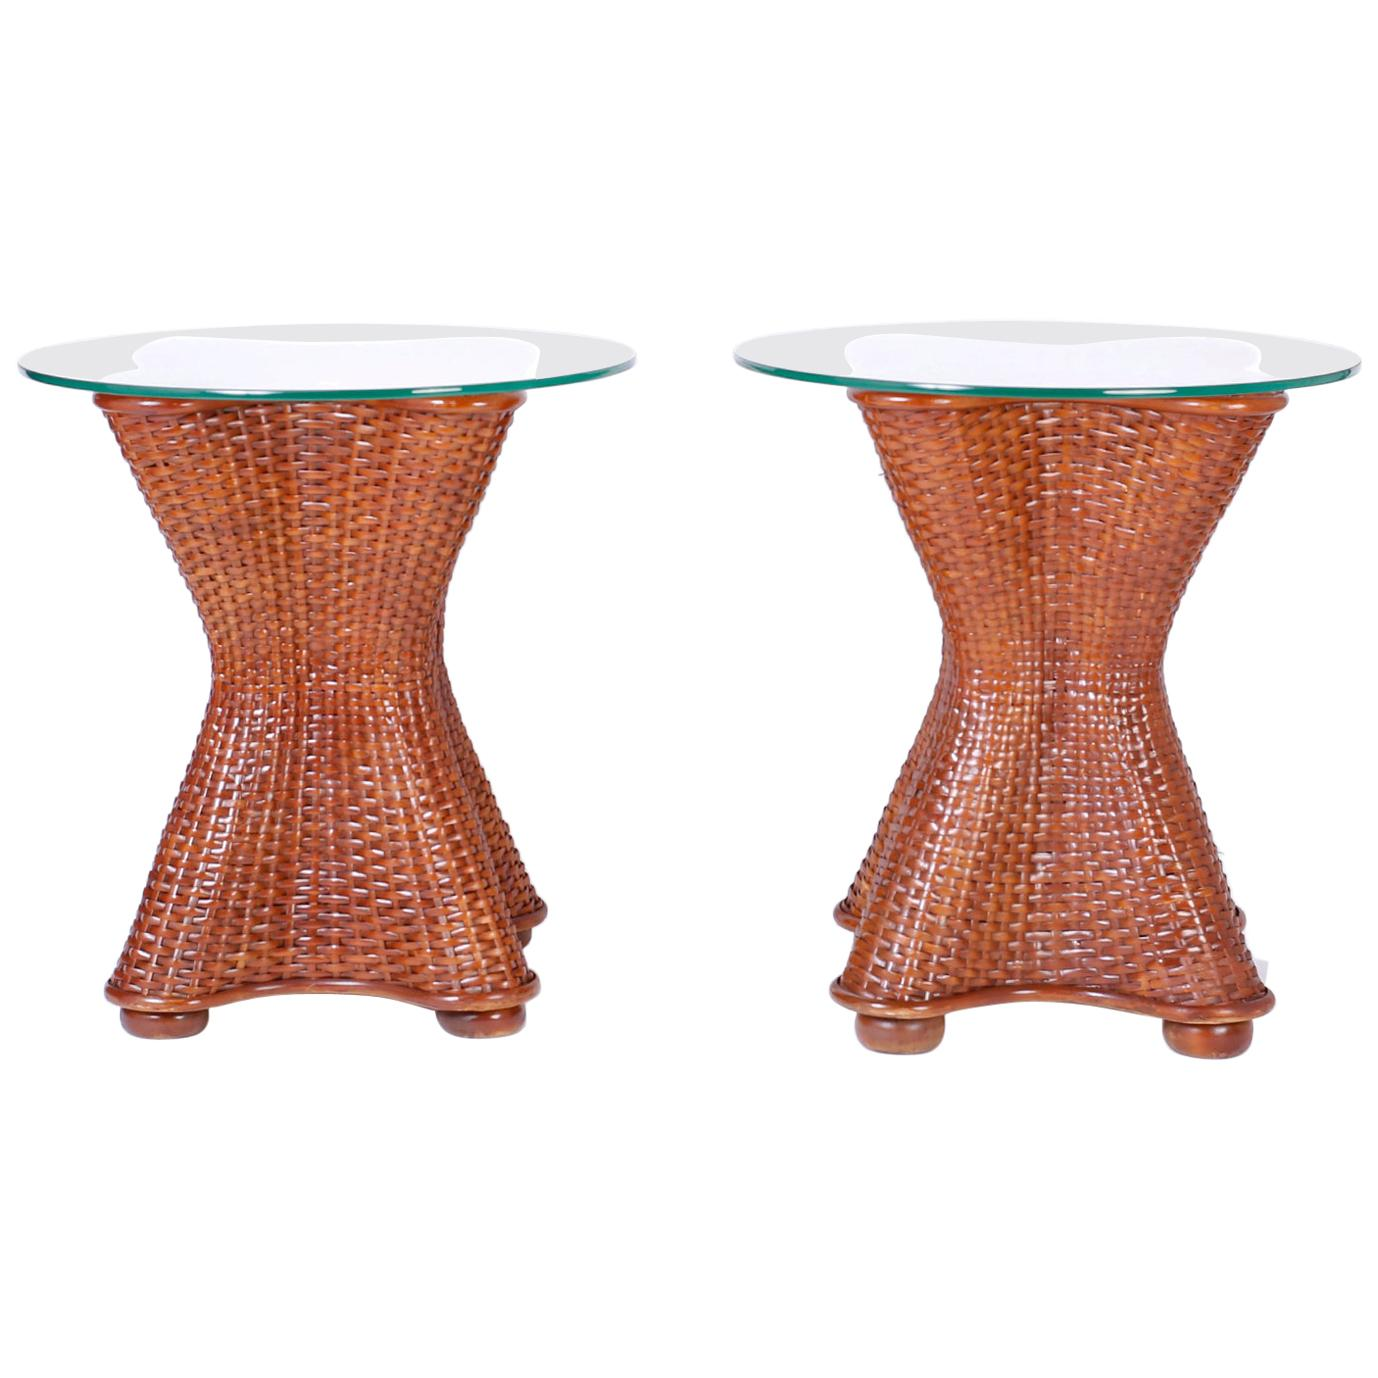 Pair of Wicker and Rattan Stands